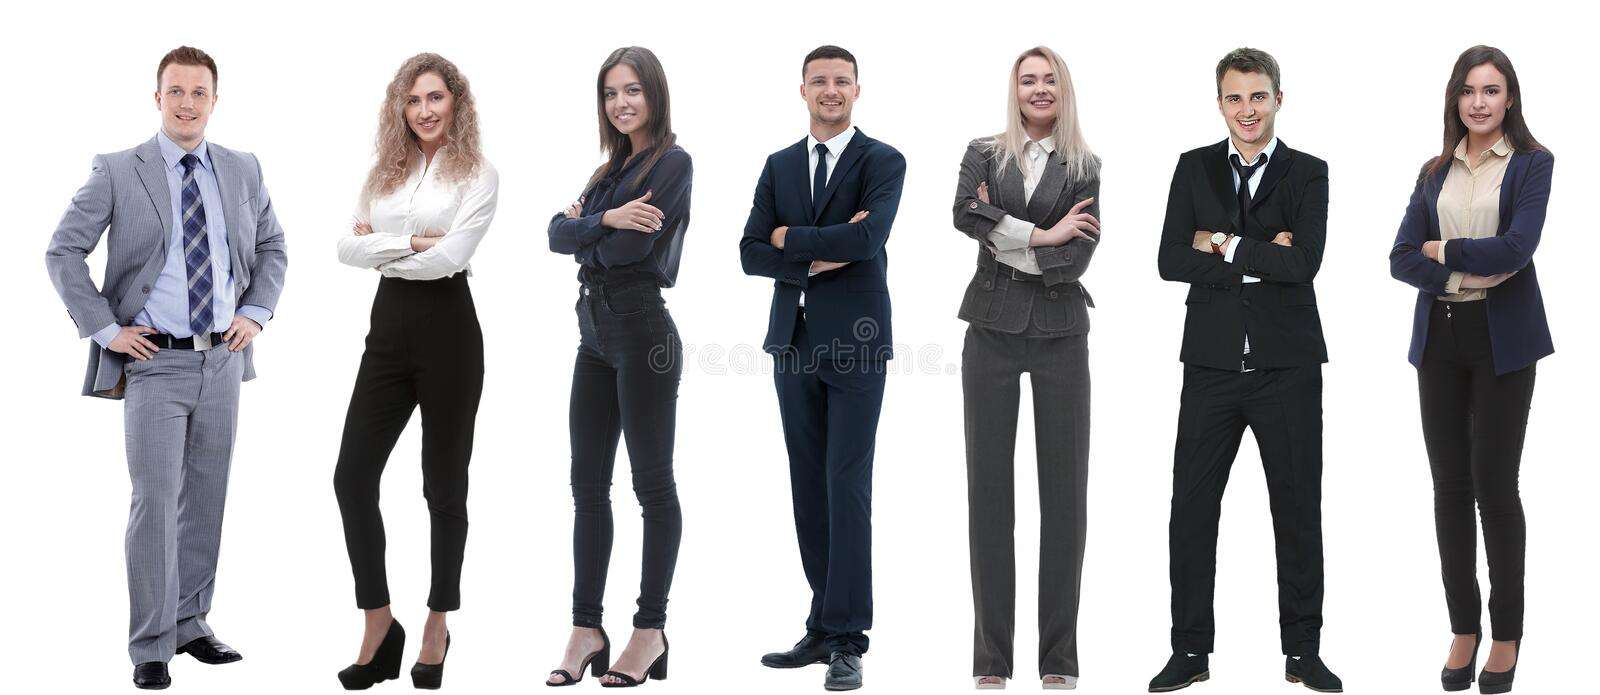 Group of successful business people standing in a row. royalty free stock photography